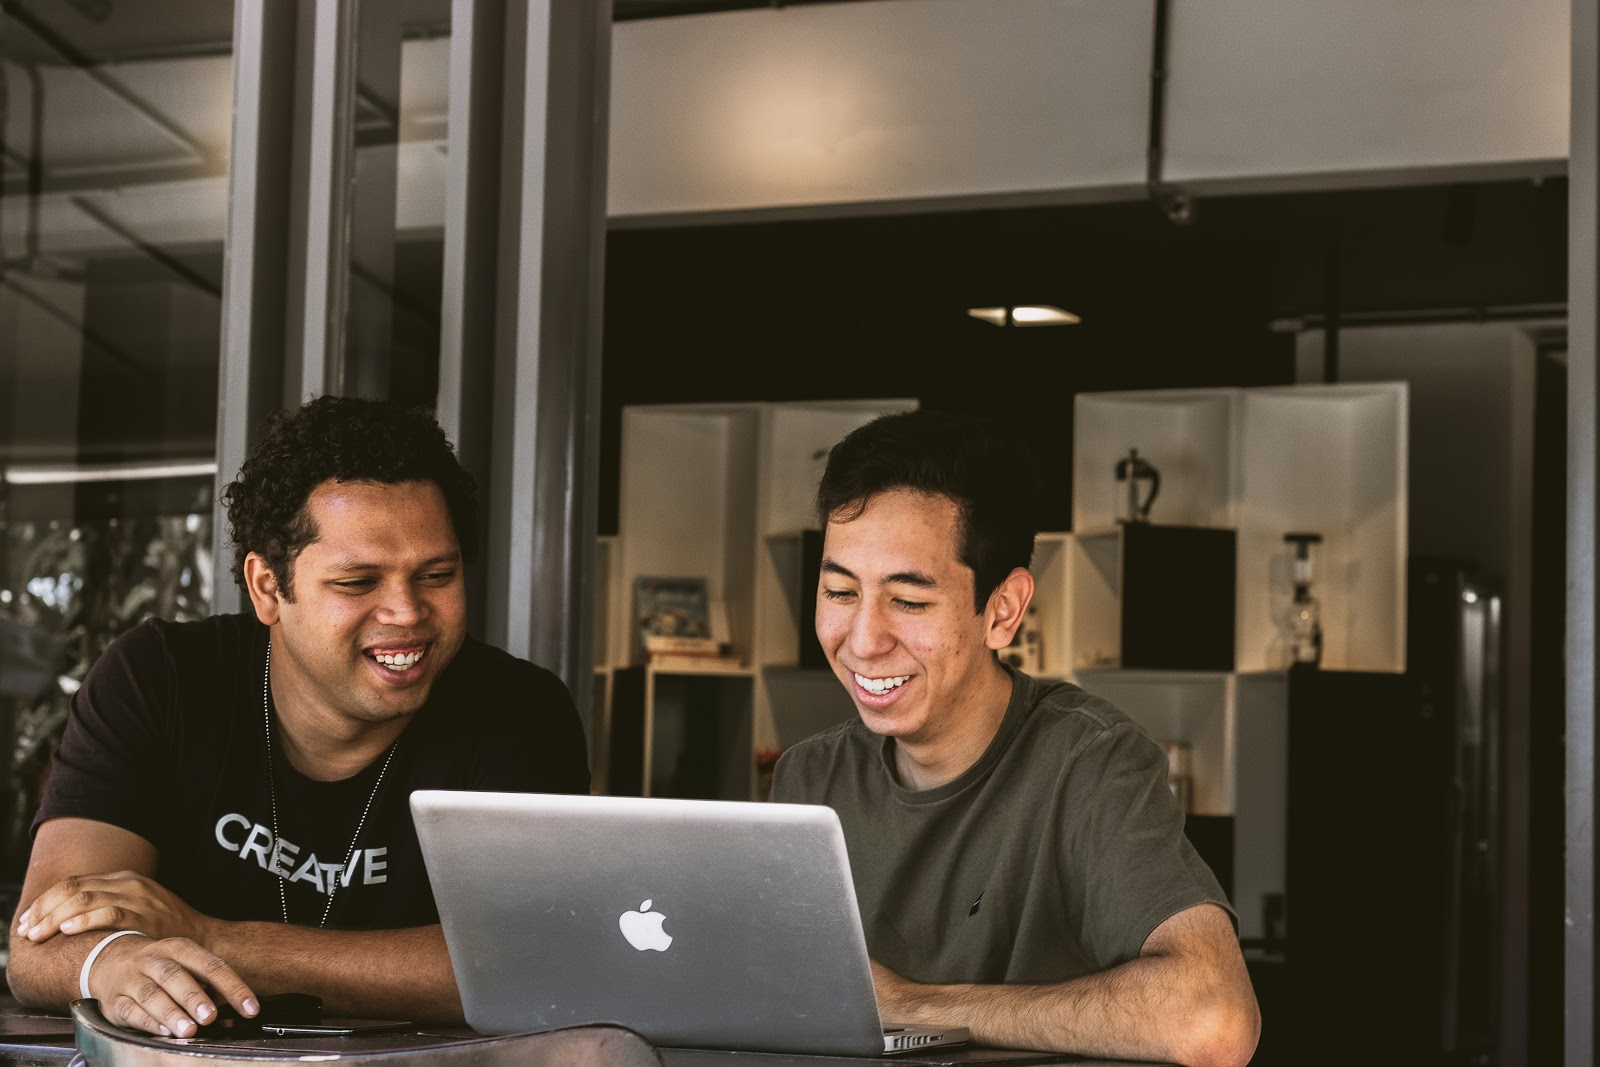 People smiling using a computer.